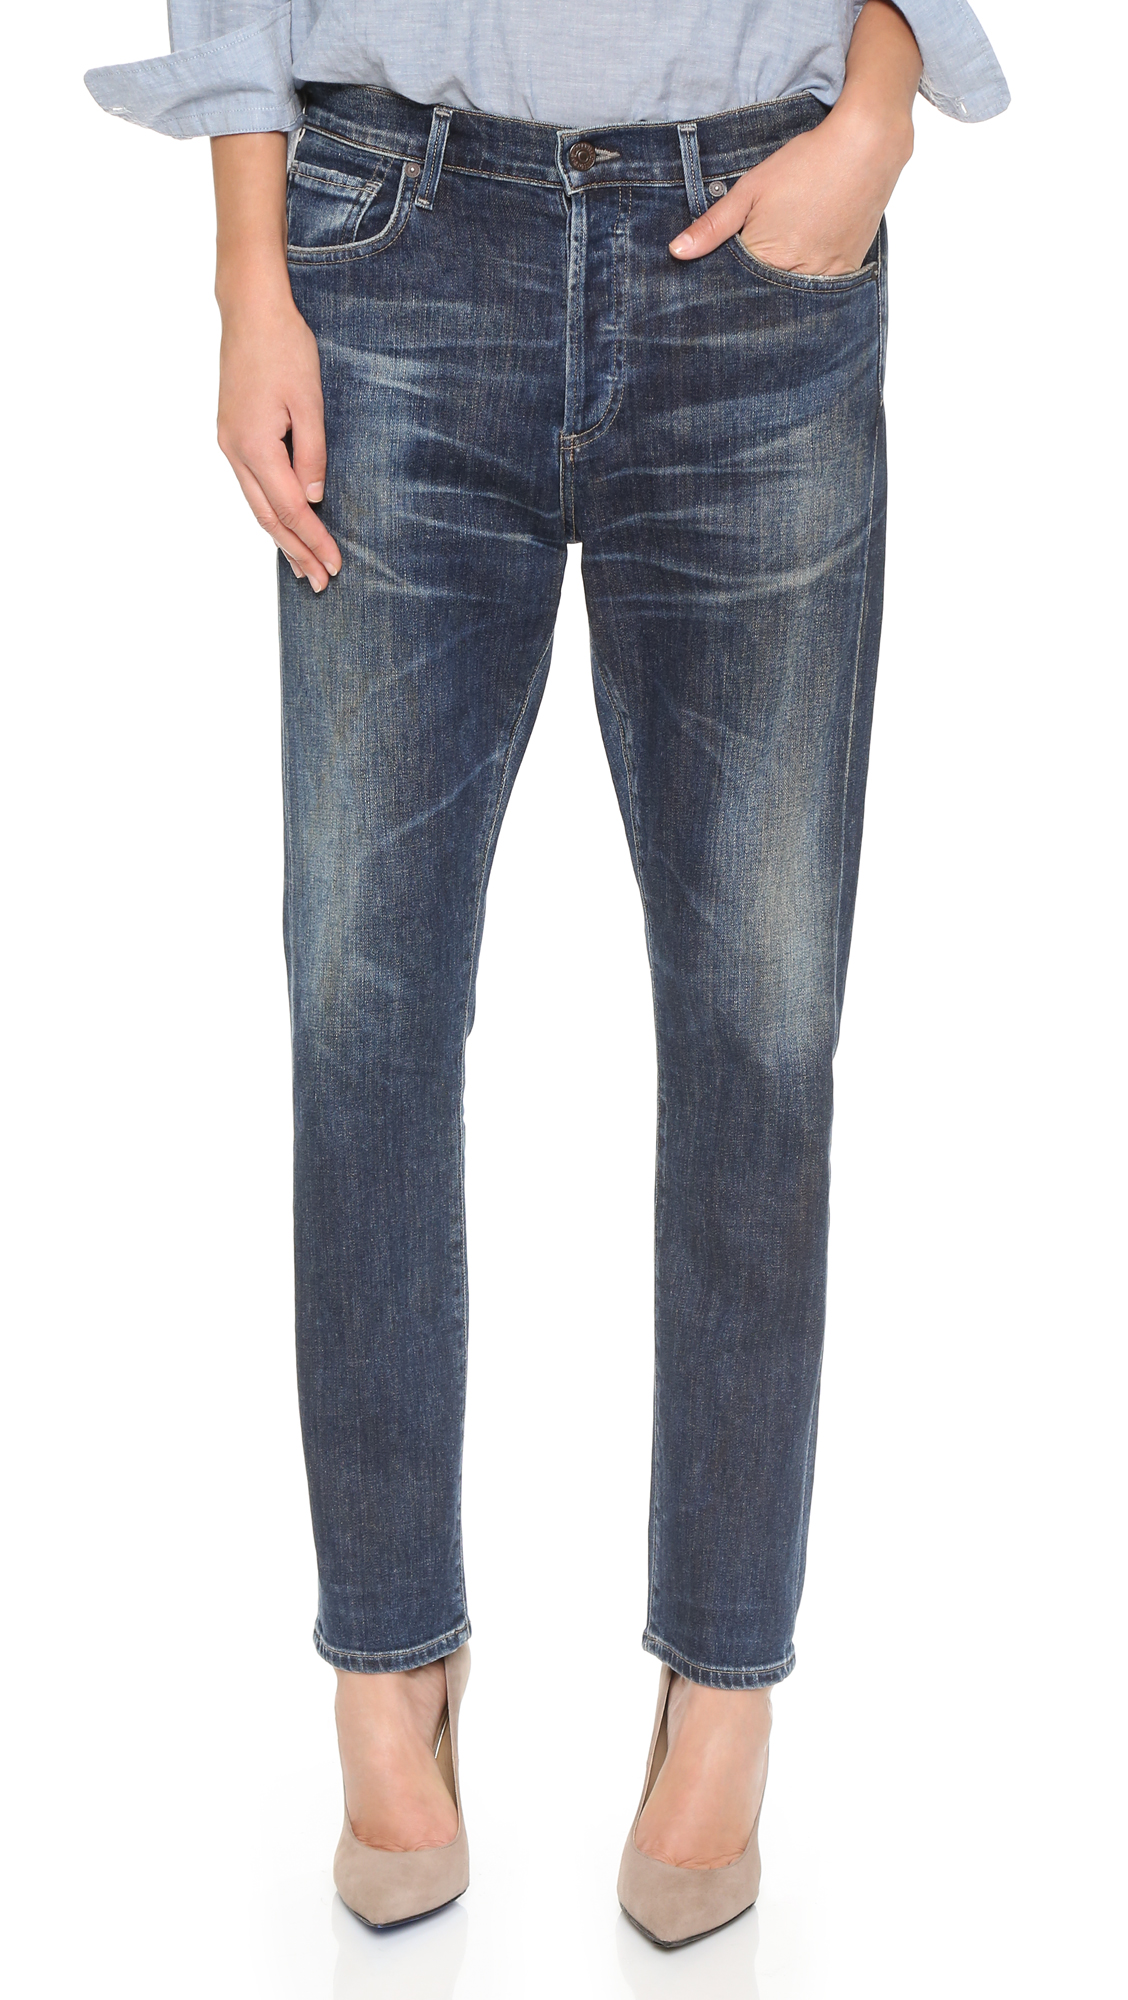 Citizens of Humanity Corey Relaxed Boy Jeans | 15% off first app ...